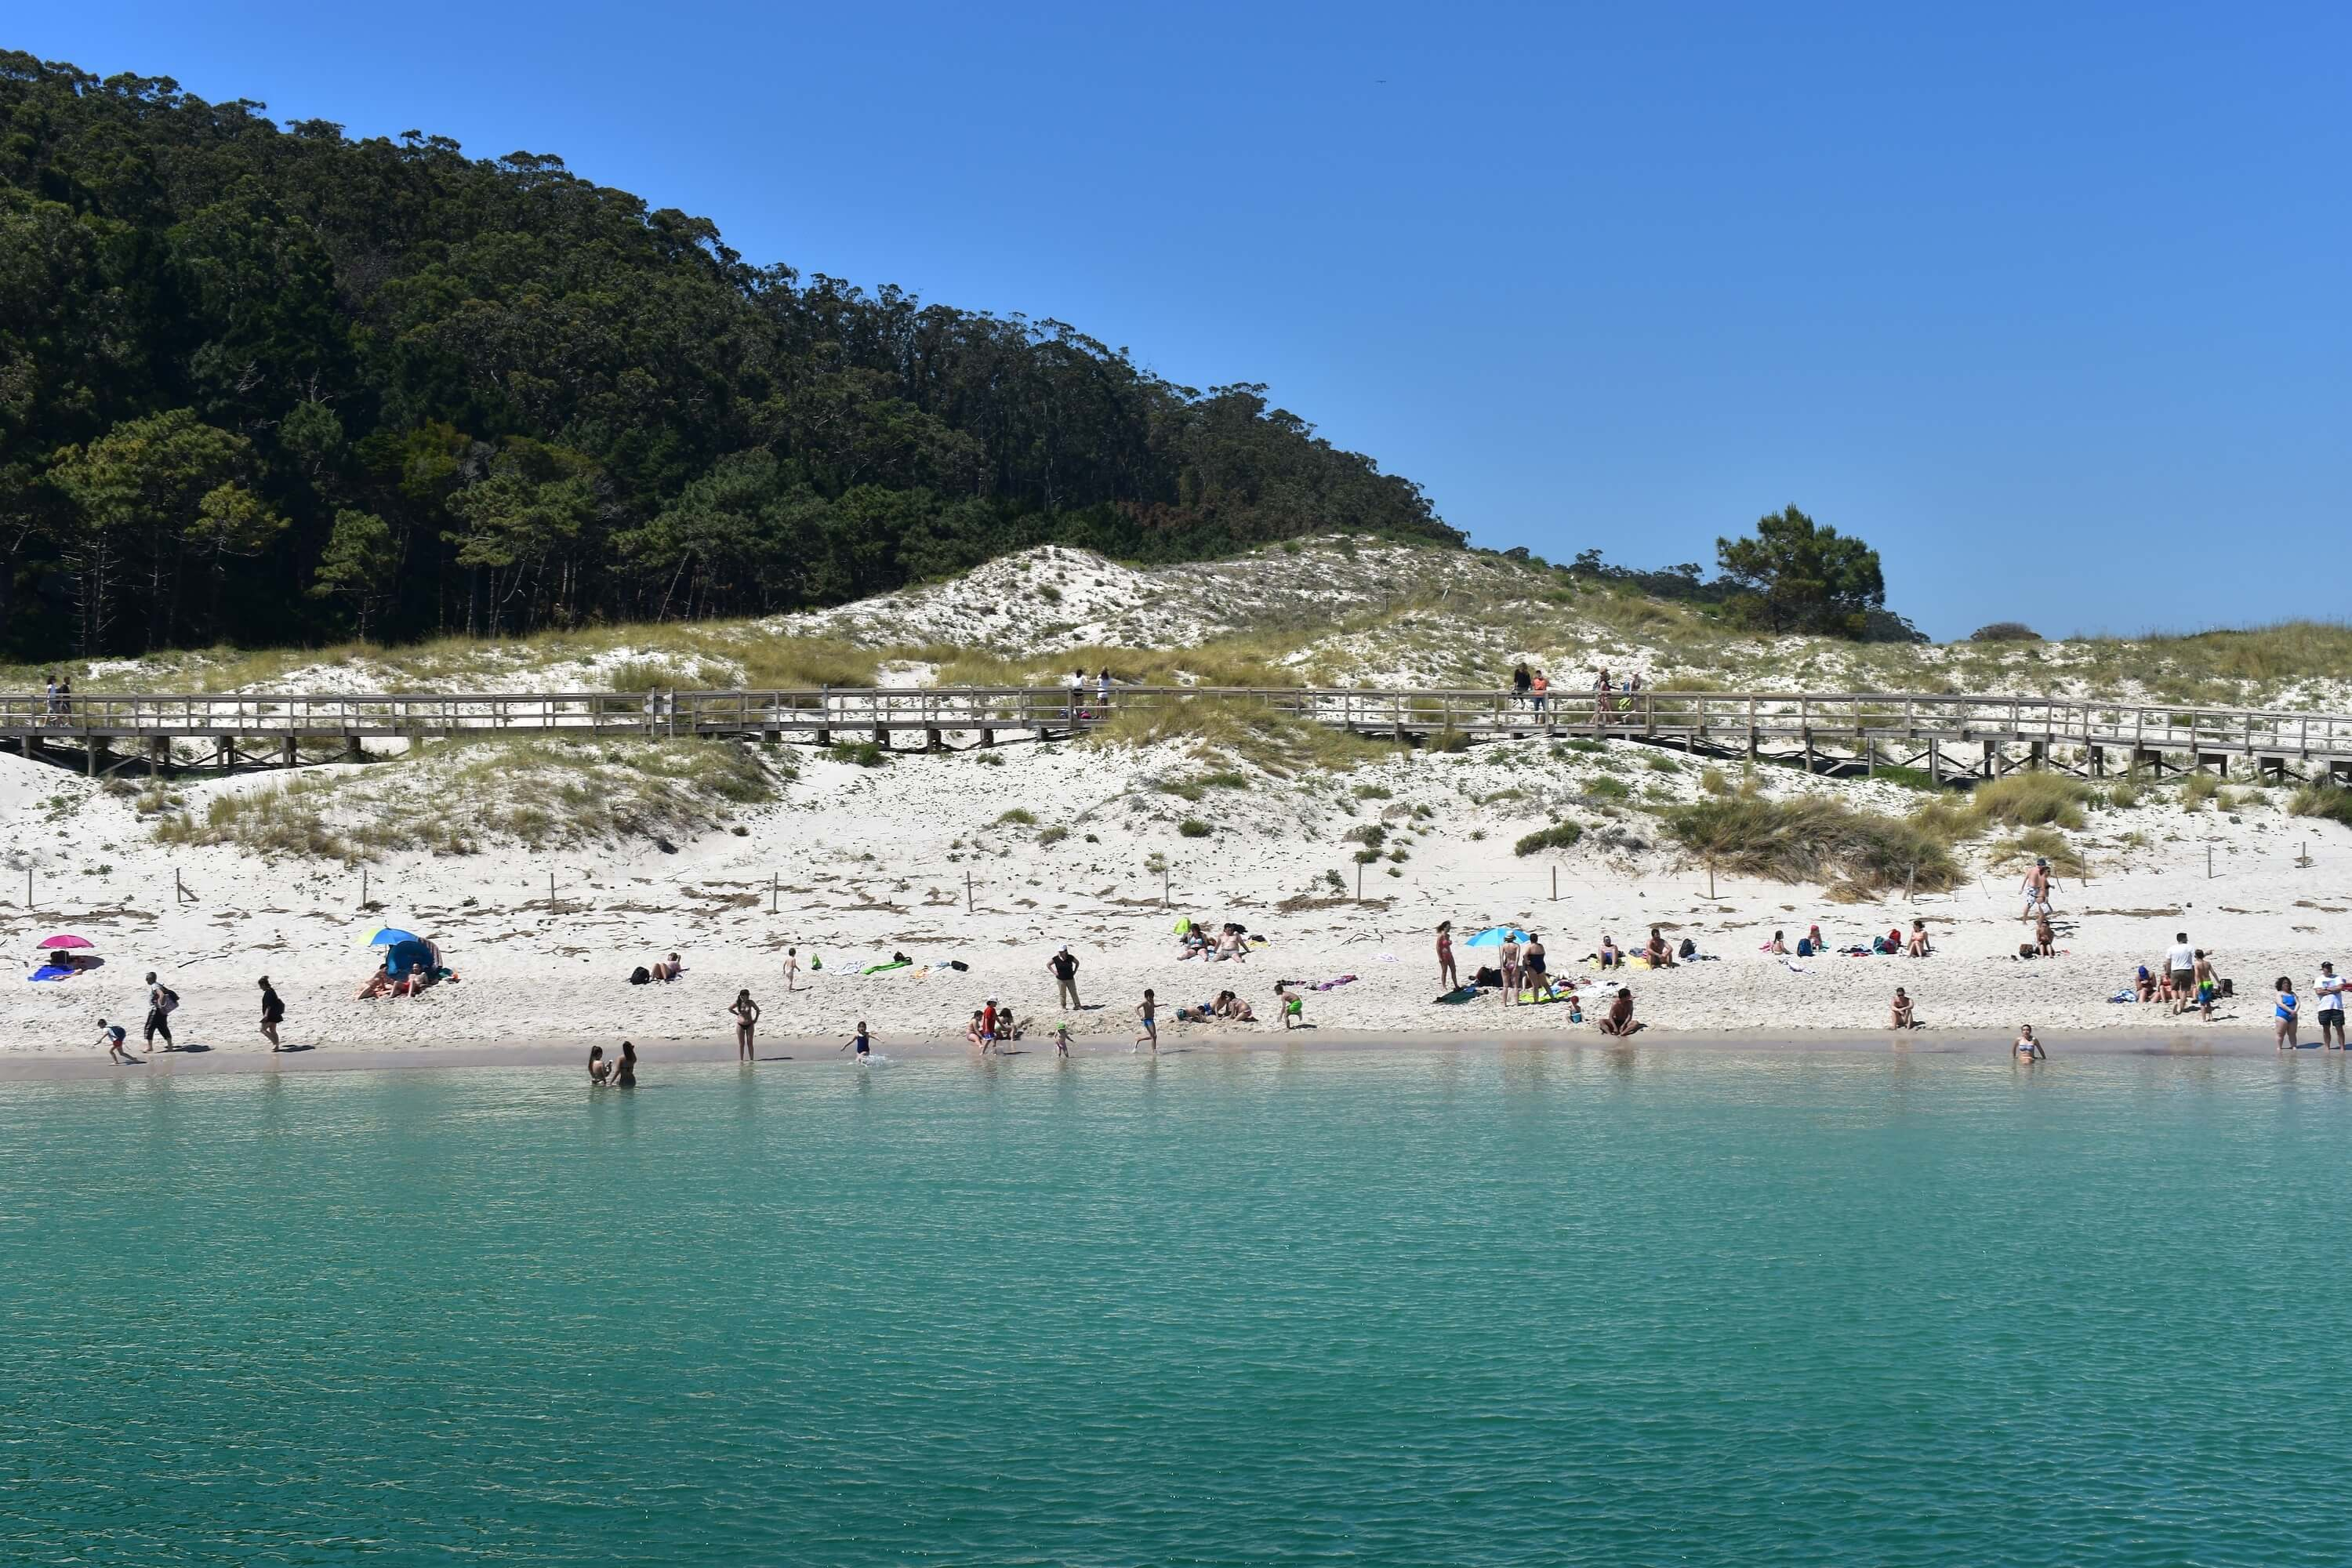 20 Photos to Inspire You to Visit the Cies Islands - Galicia Spain Travel Front View of Rodas Beach